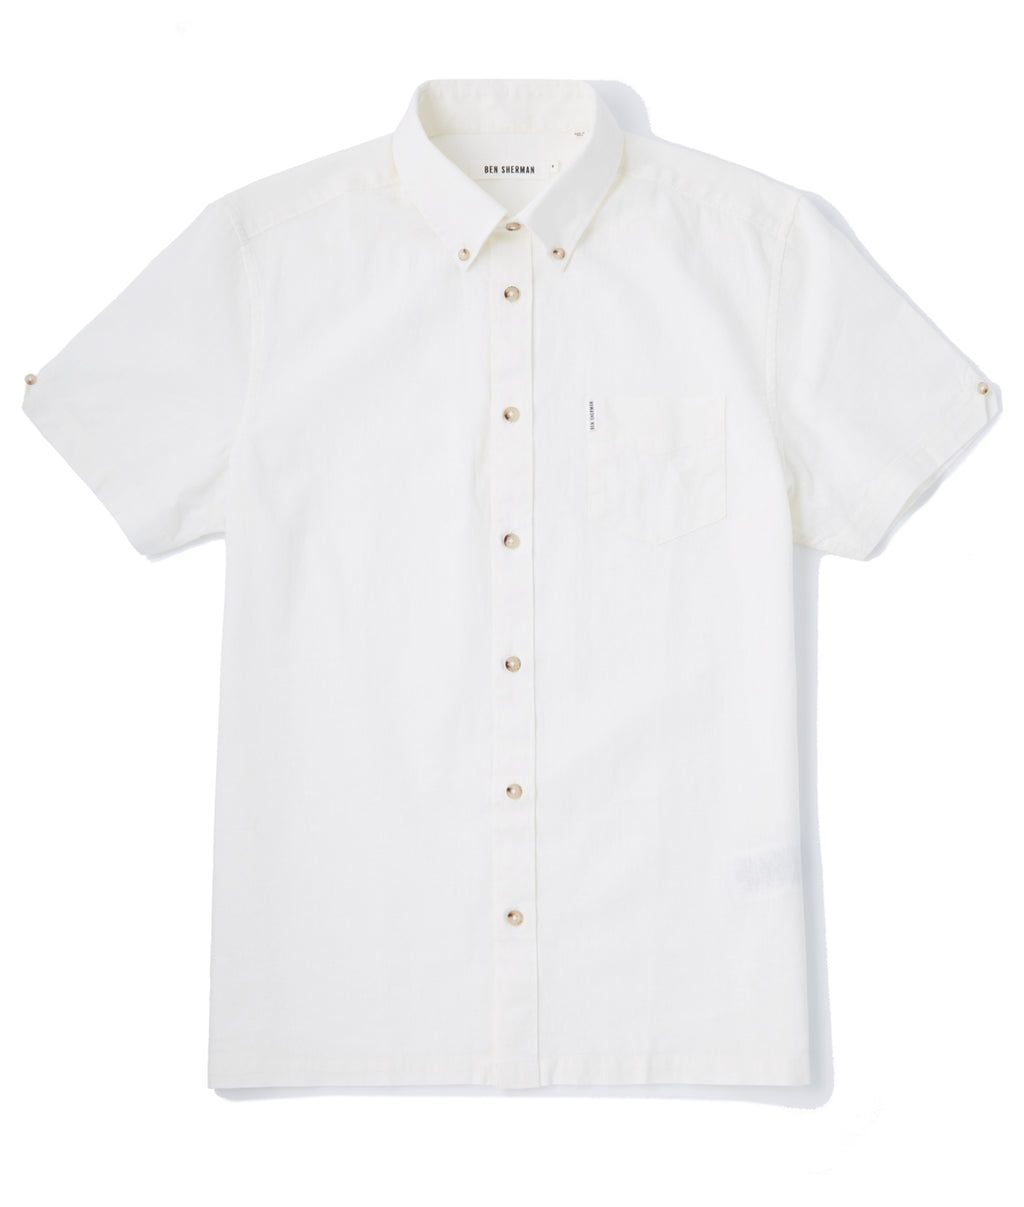 Ben Sherman Plain Linen SS Shirt - OFF WHITE